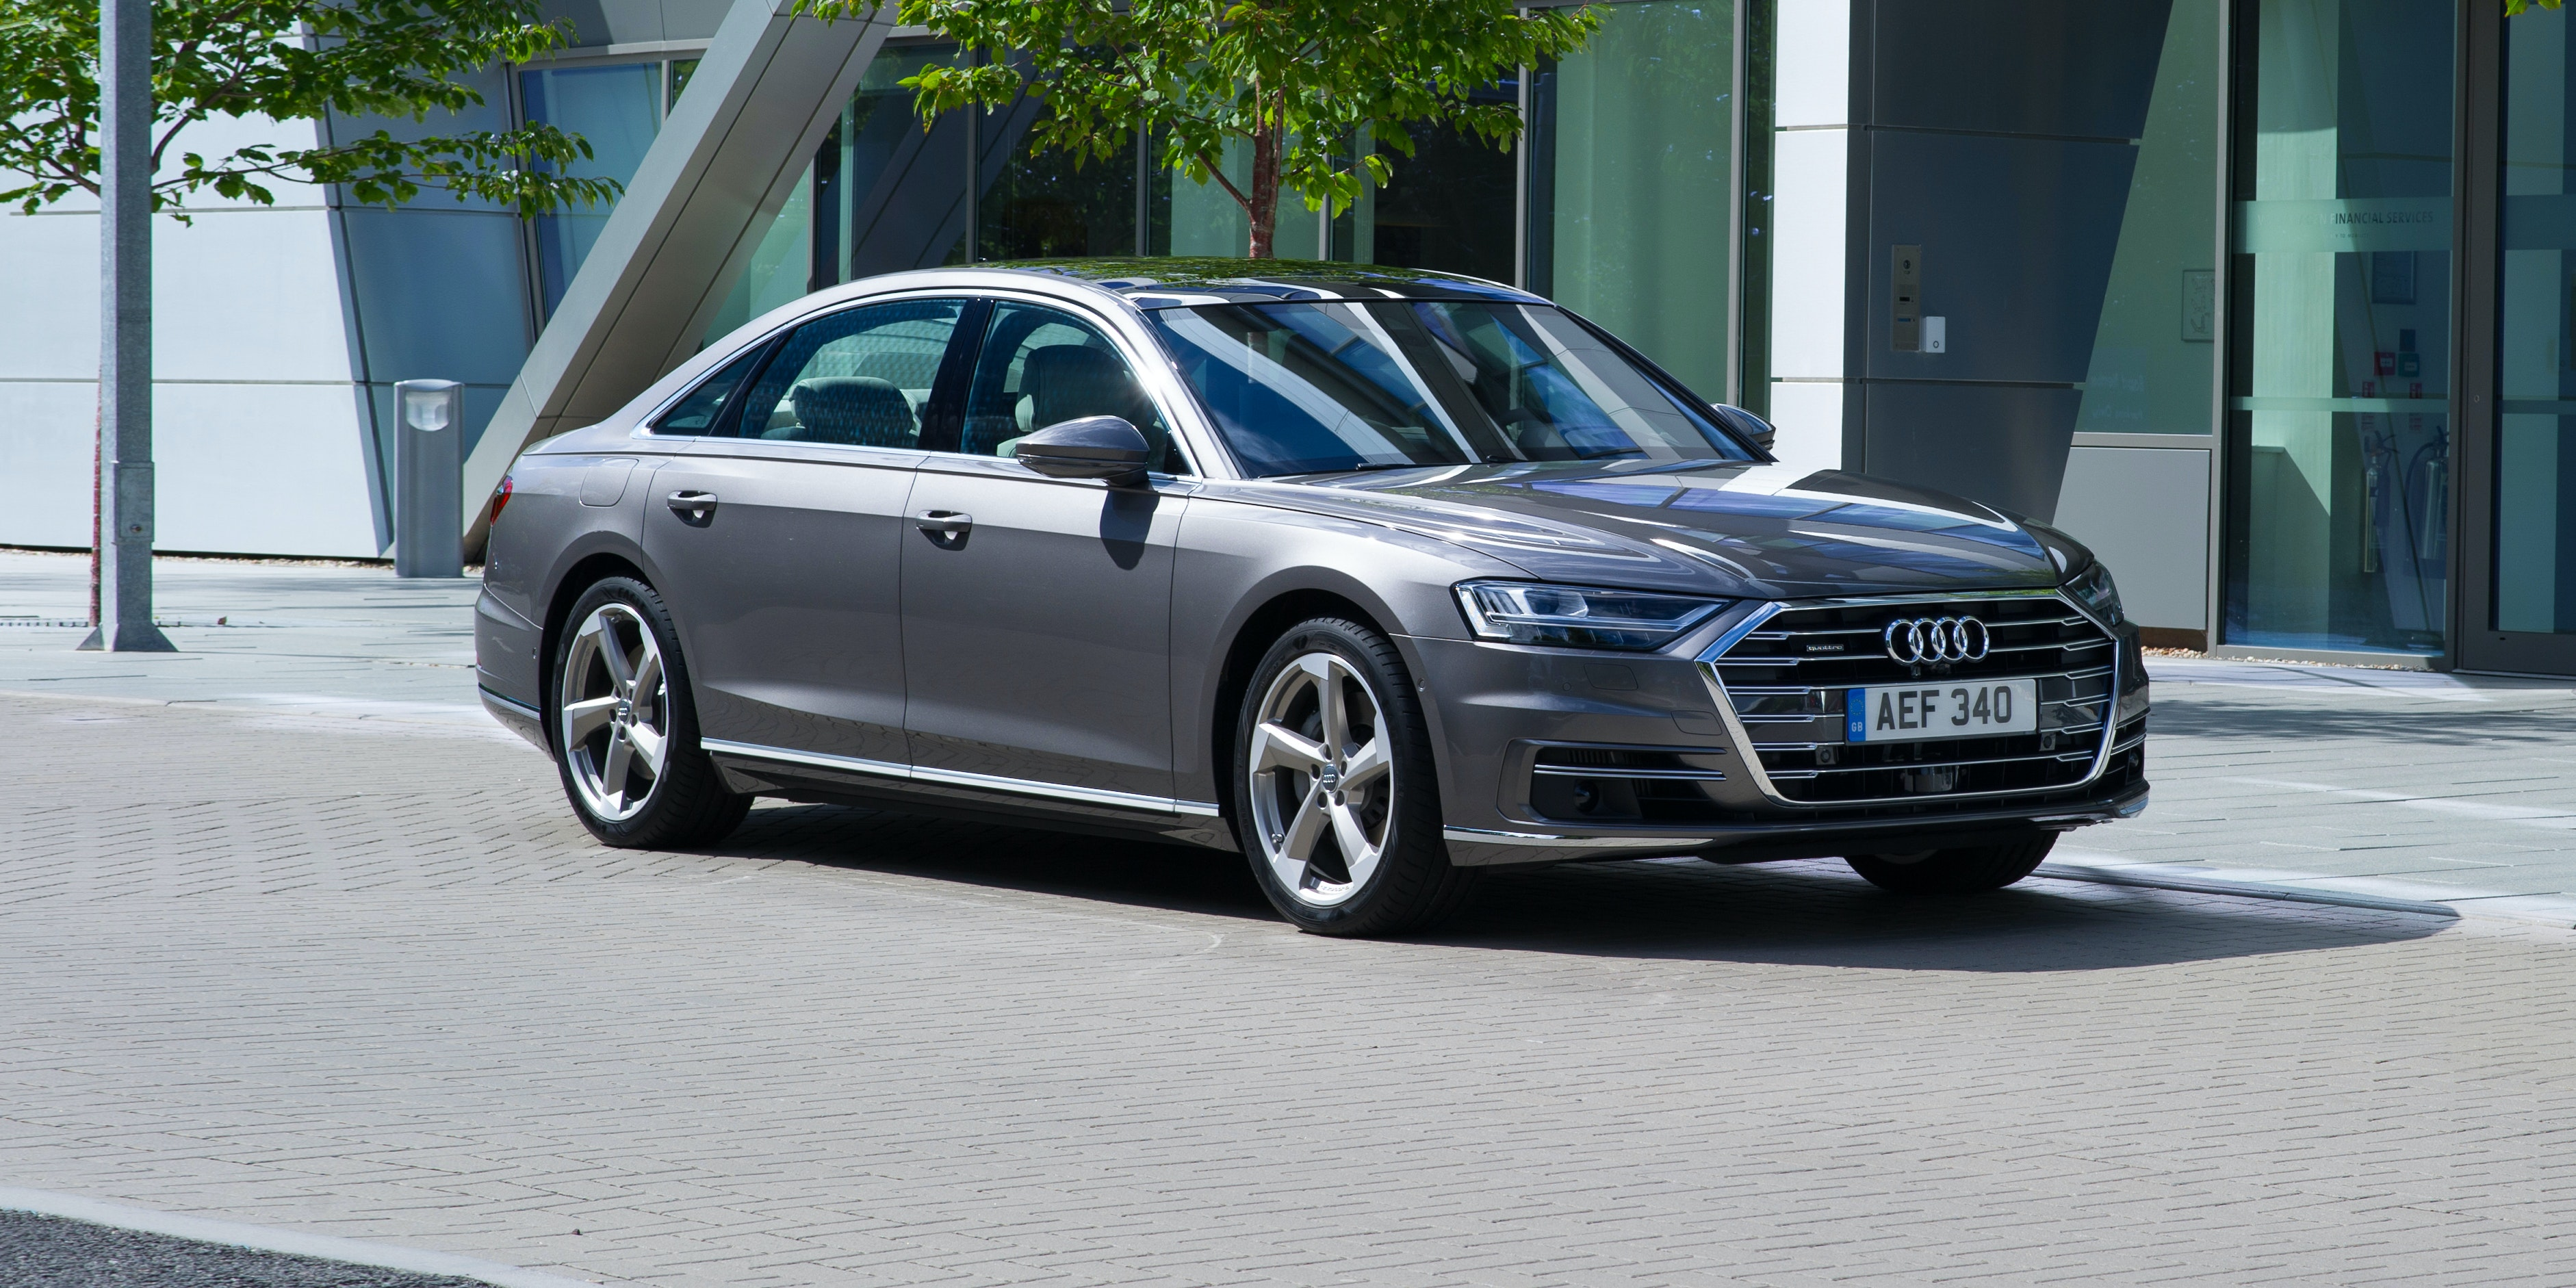 New Audi A8 Review | Carwow